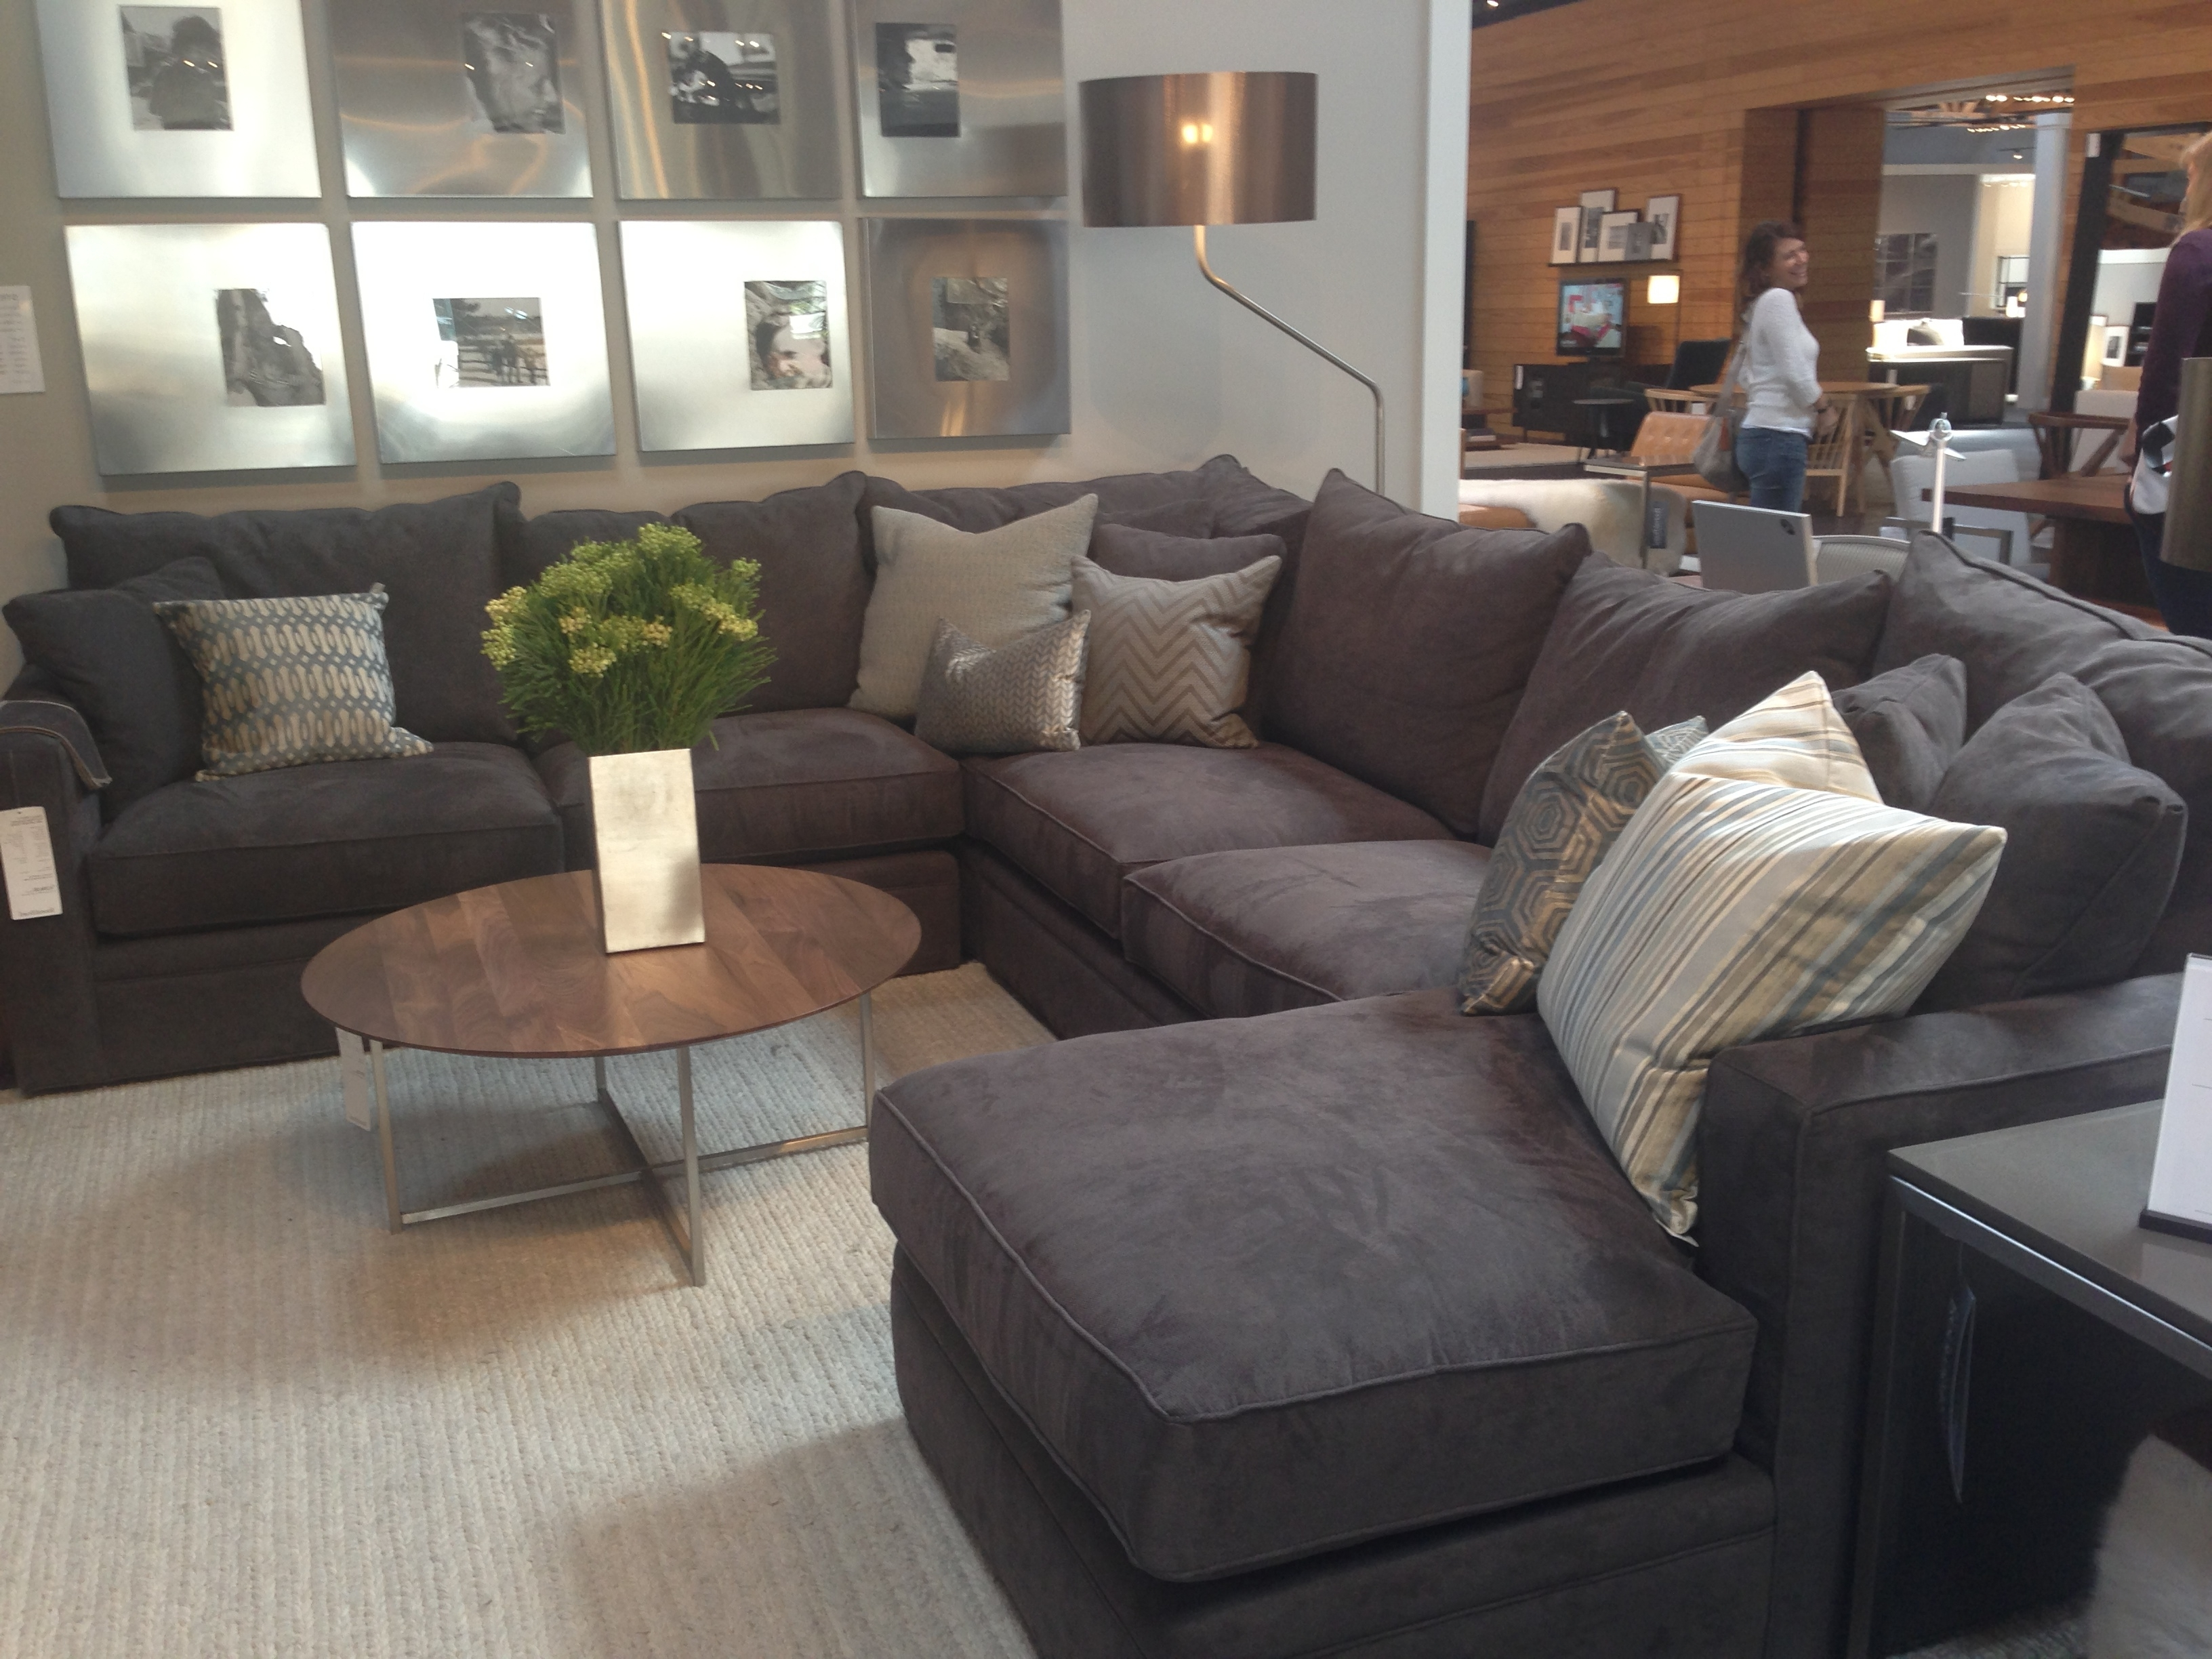 [%Sectional #couch #orson | @ [ Marina Del Ray ] | Pinterest Intended For Newest Room And Board Sectional Sofas|Room And Board Sectional Sofas With Regard To Newest Sectional #couch #orson | @ [ Marina Del Ray ] | Pinterest|2018 Room And Board Sectional Sofas Pertaining To Sectional #couch #orson | @ [ Marina Del Ray ] | Pinterest|Most Up To Date Sectional #couch #orson | @ [ Marina Del Ray ] | Pinterest Throughout Room And Board Sectional Sofas%] (View 5 of 20)